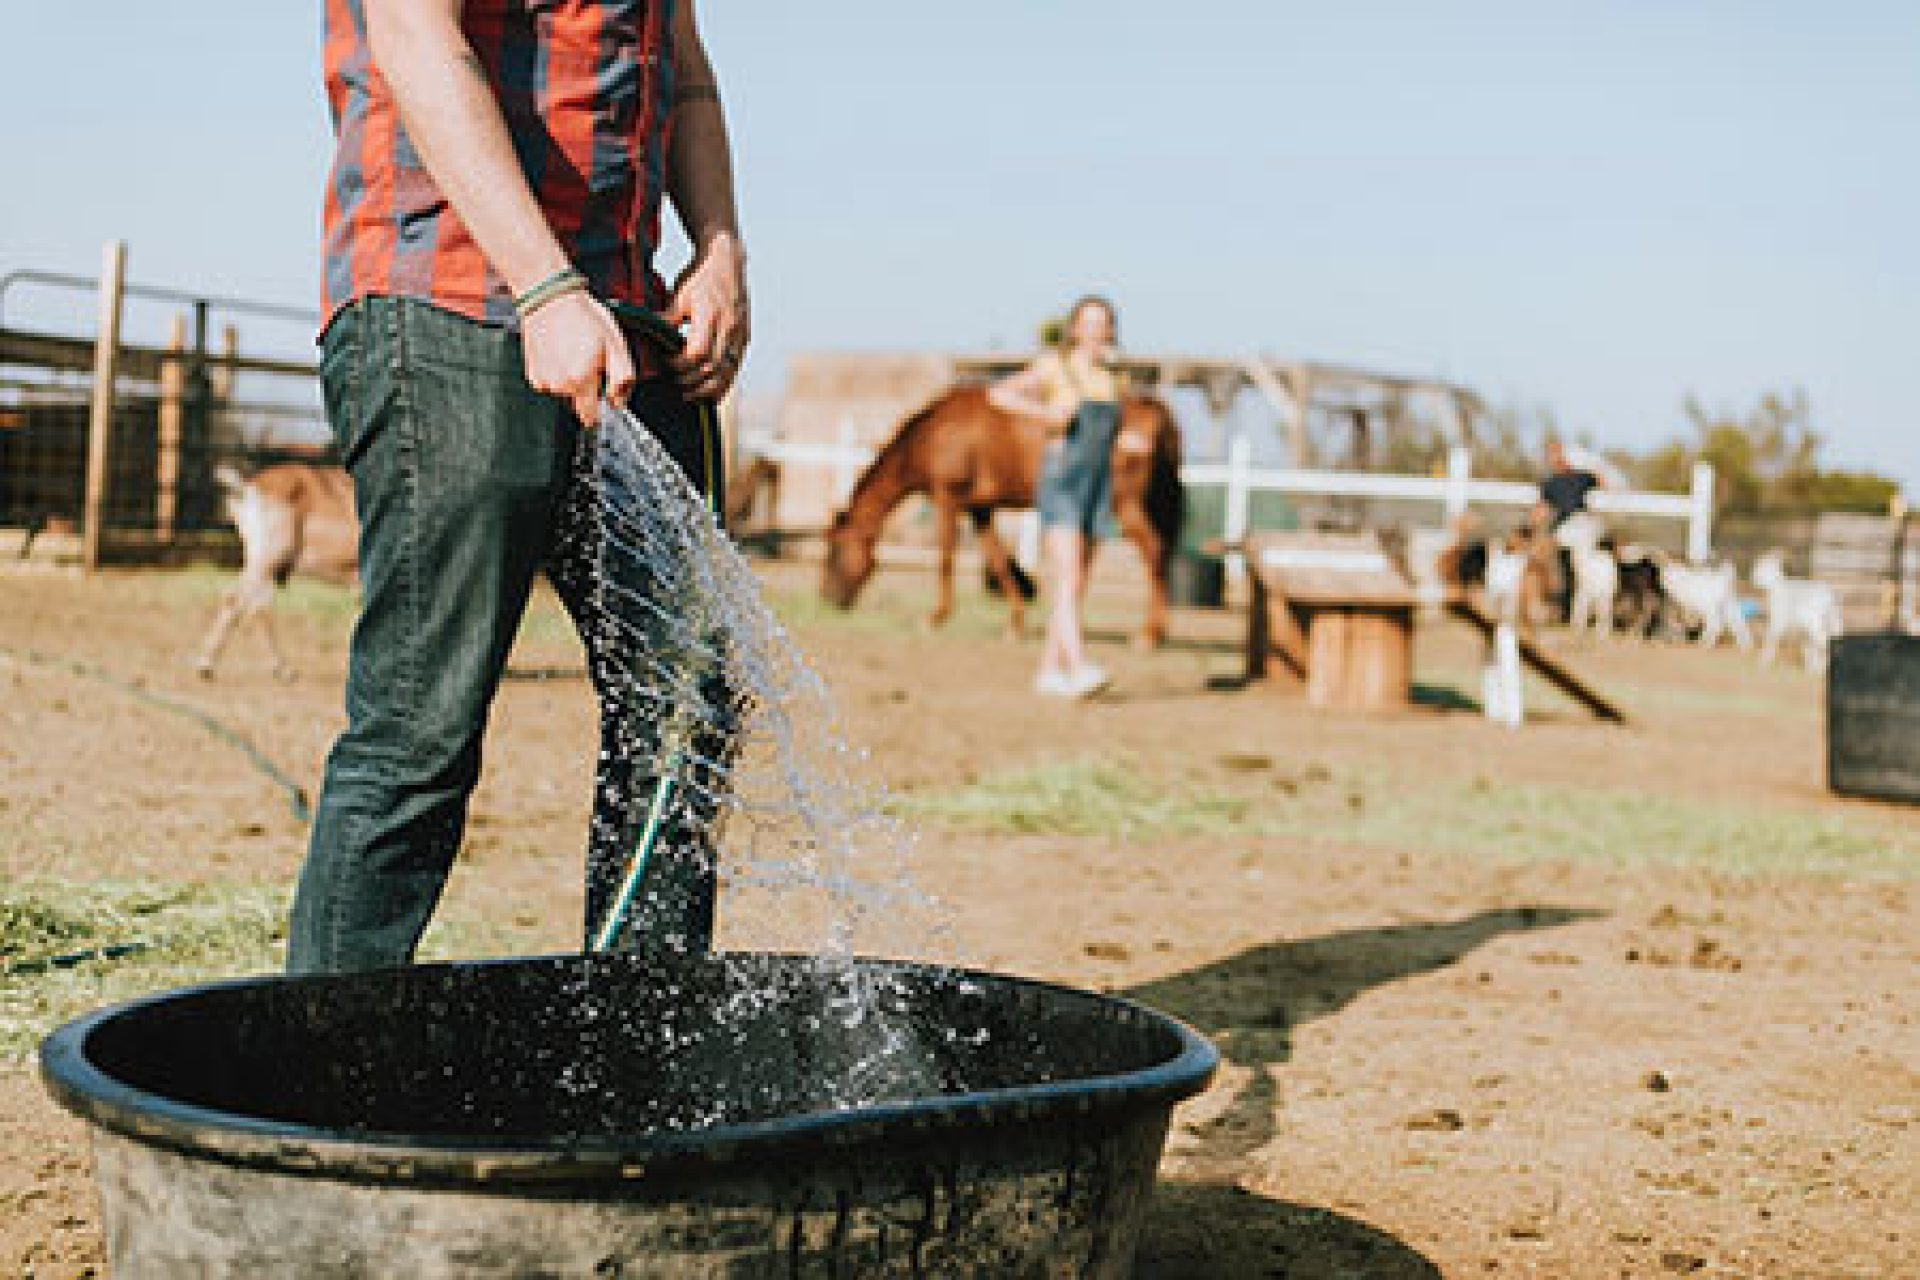 Man Filling Tub With Water